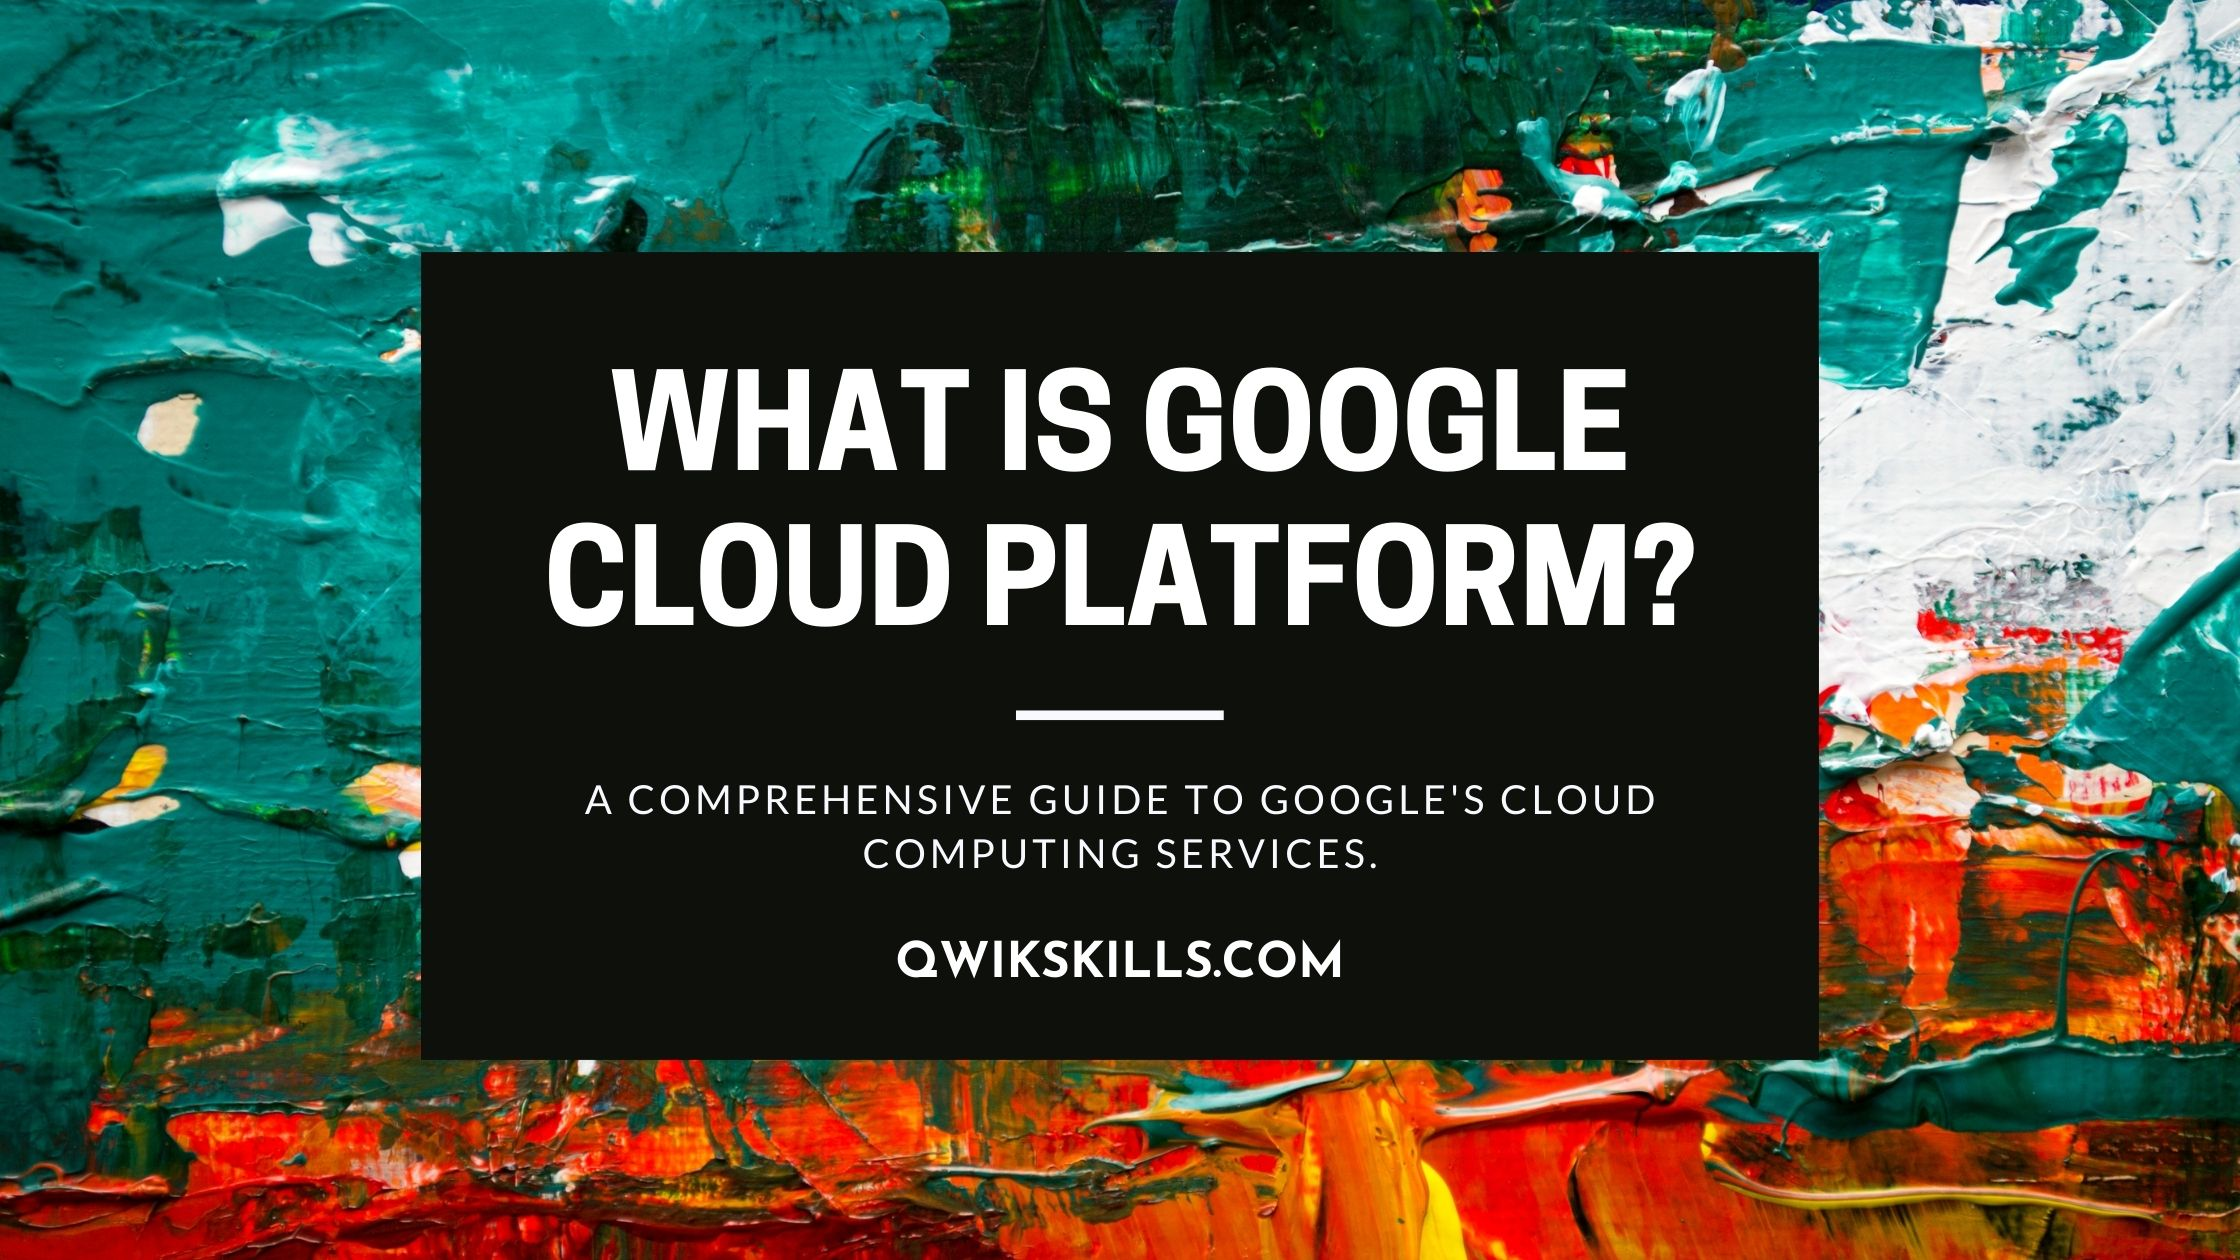 What is Google Cloud Platform? A Comprehensive Guide to Google's Cloud Computing Services.